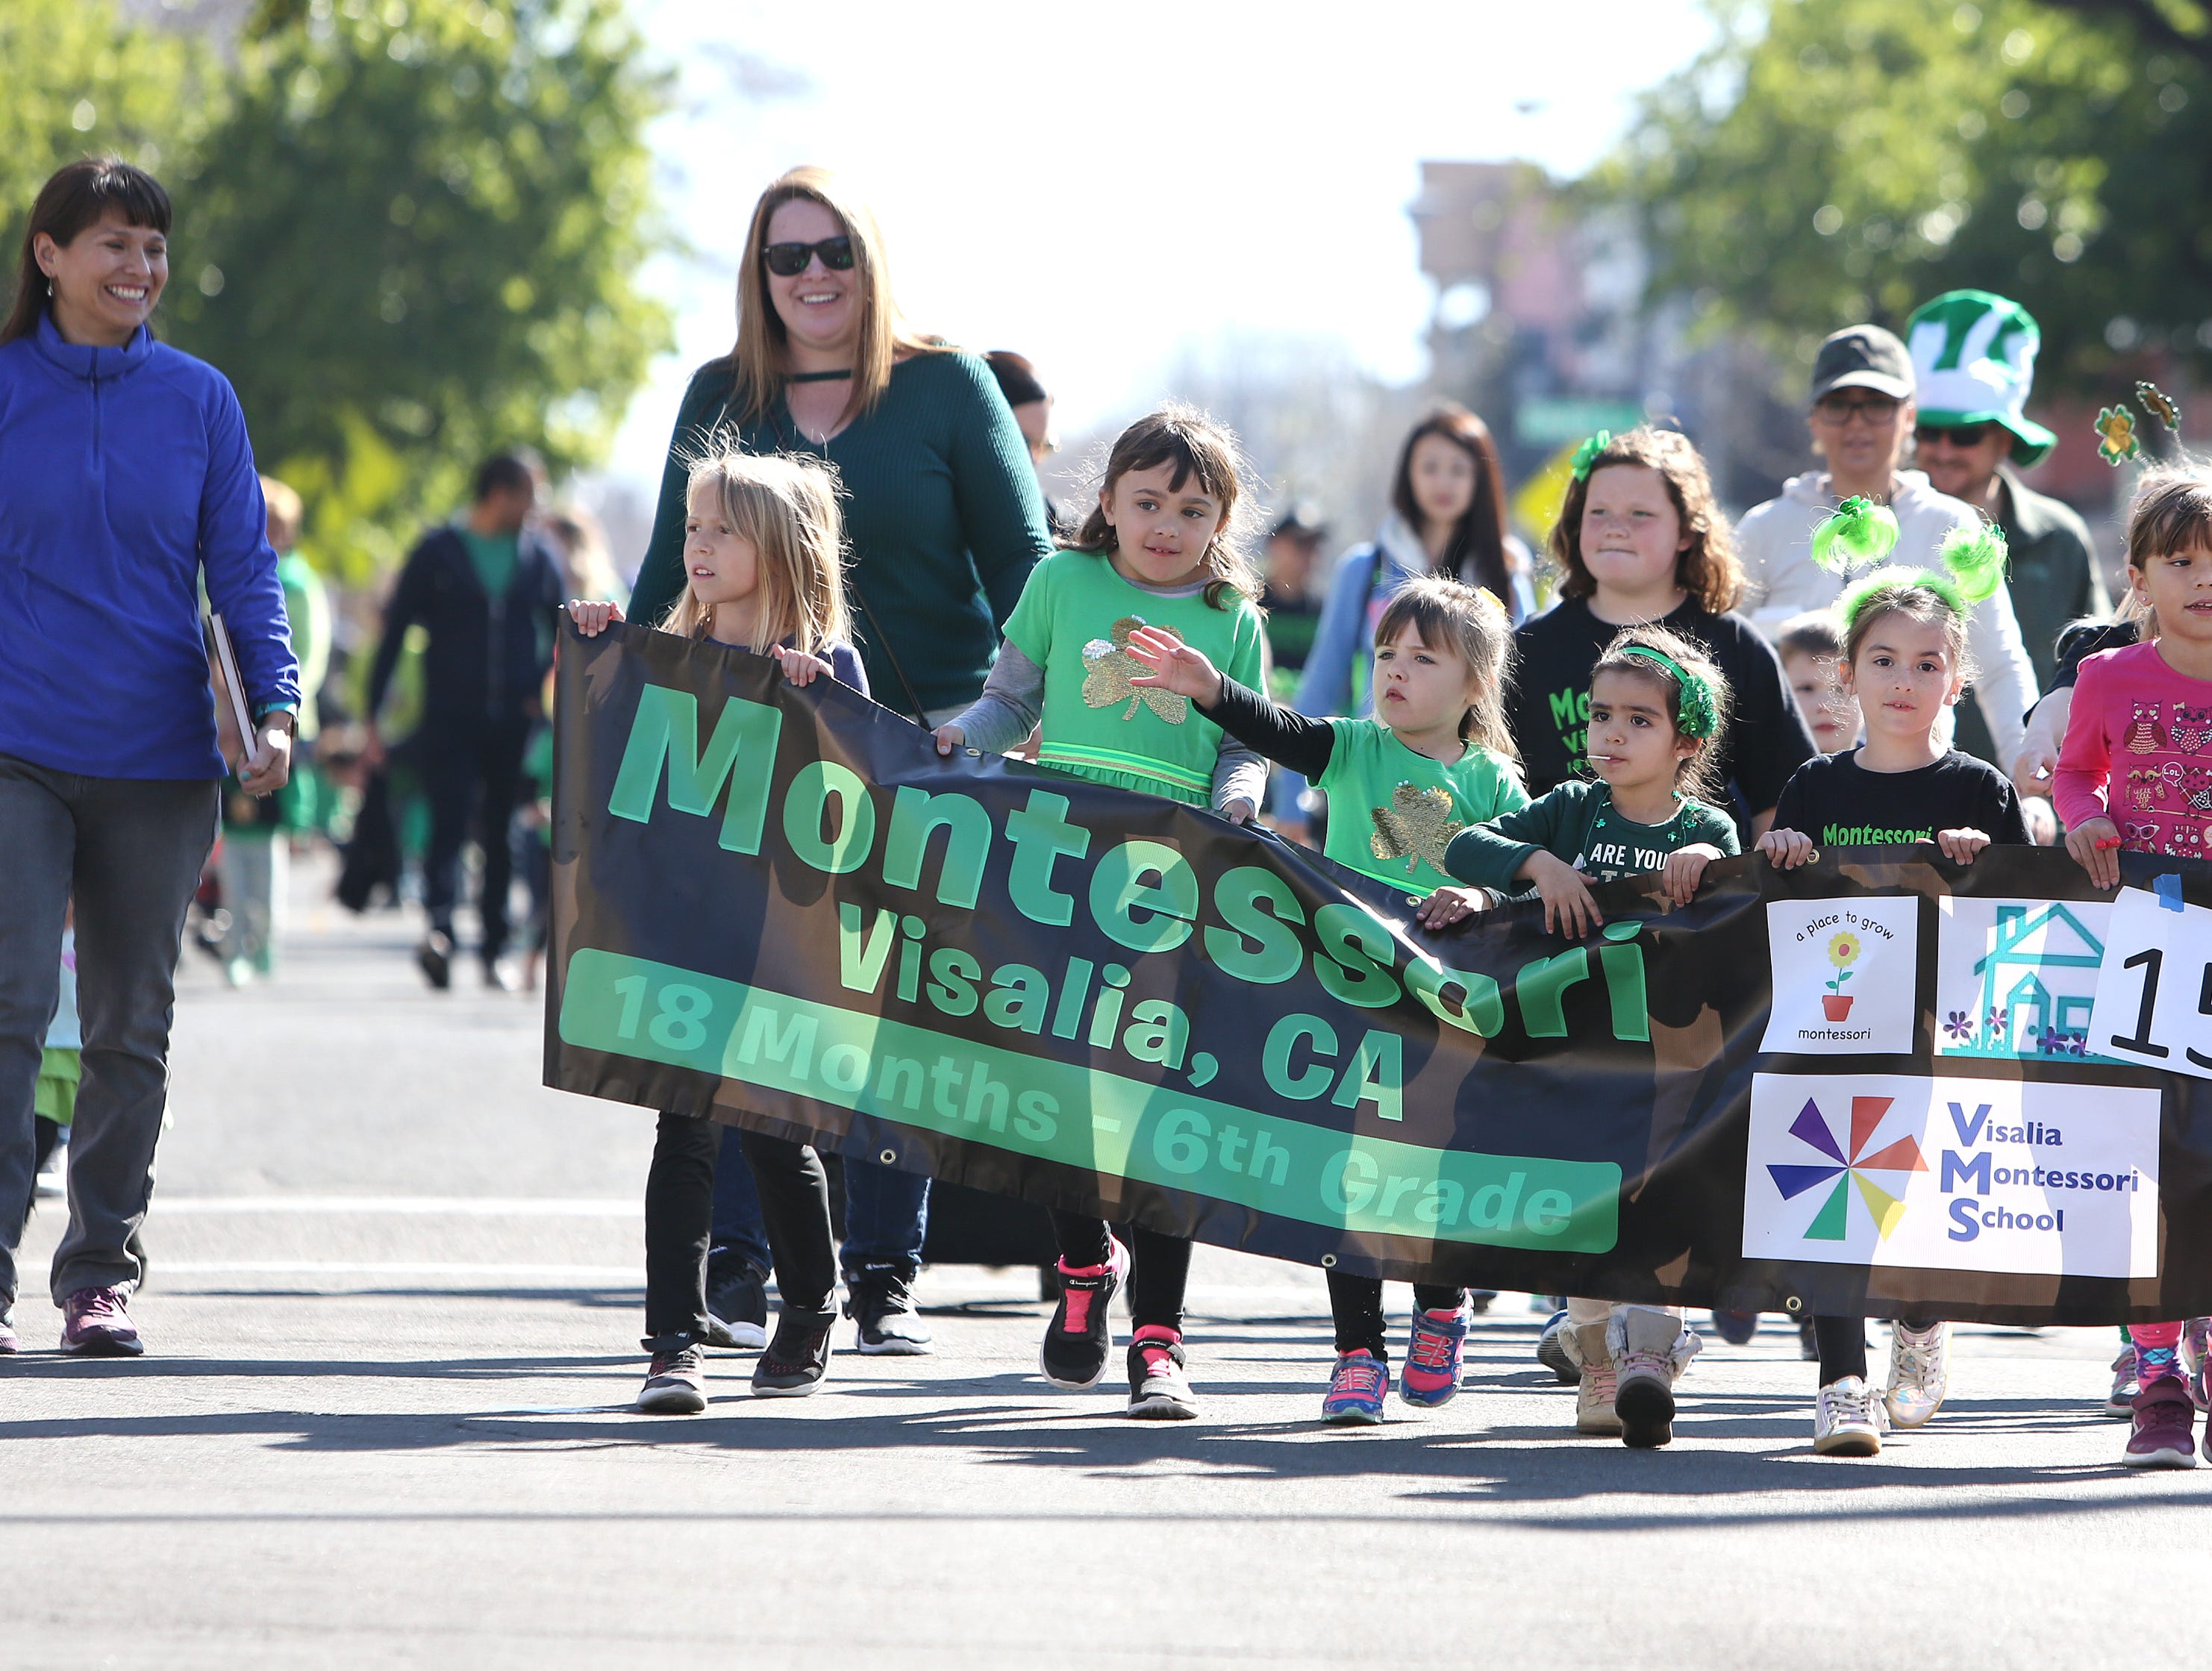 Montessori School attendee's wave to the crowds at this year's St. Patrick's Day parade rolling through Main Street Saturday, March 16, 2019 in Visalia, Calif.